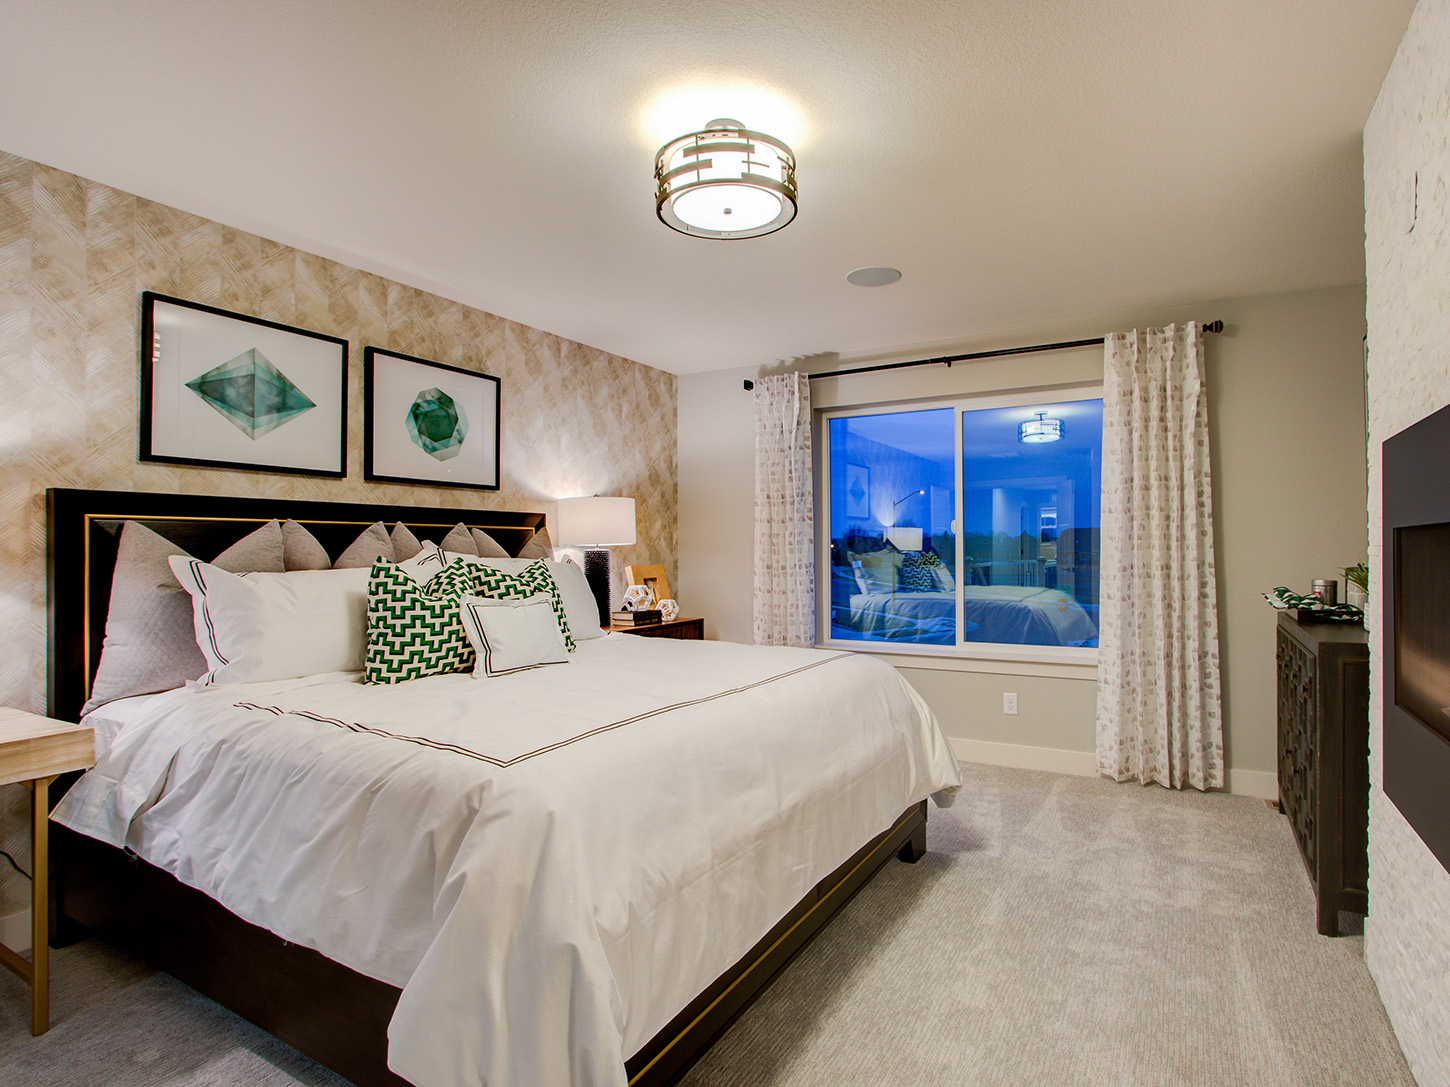 18_monarch_ft_20collins_master_20bedroom_dream_20home